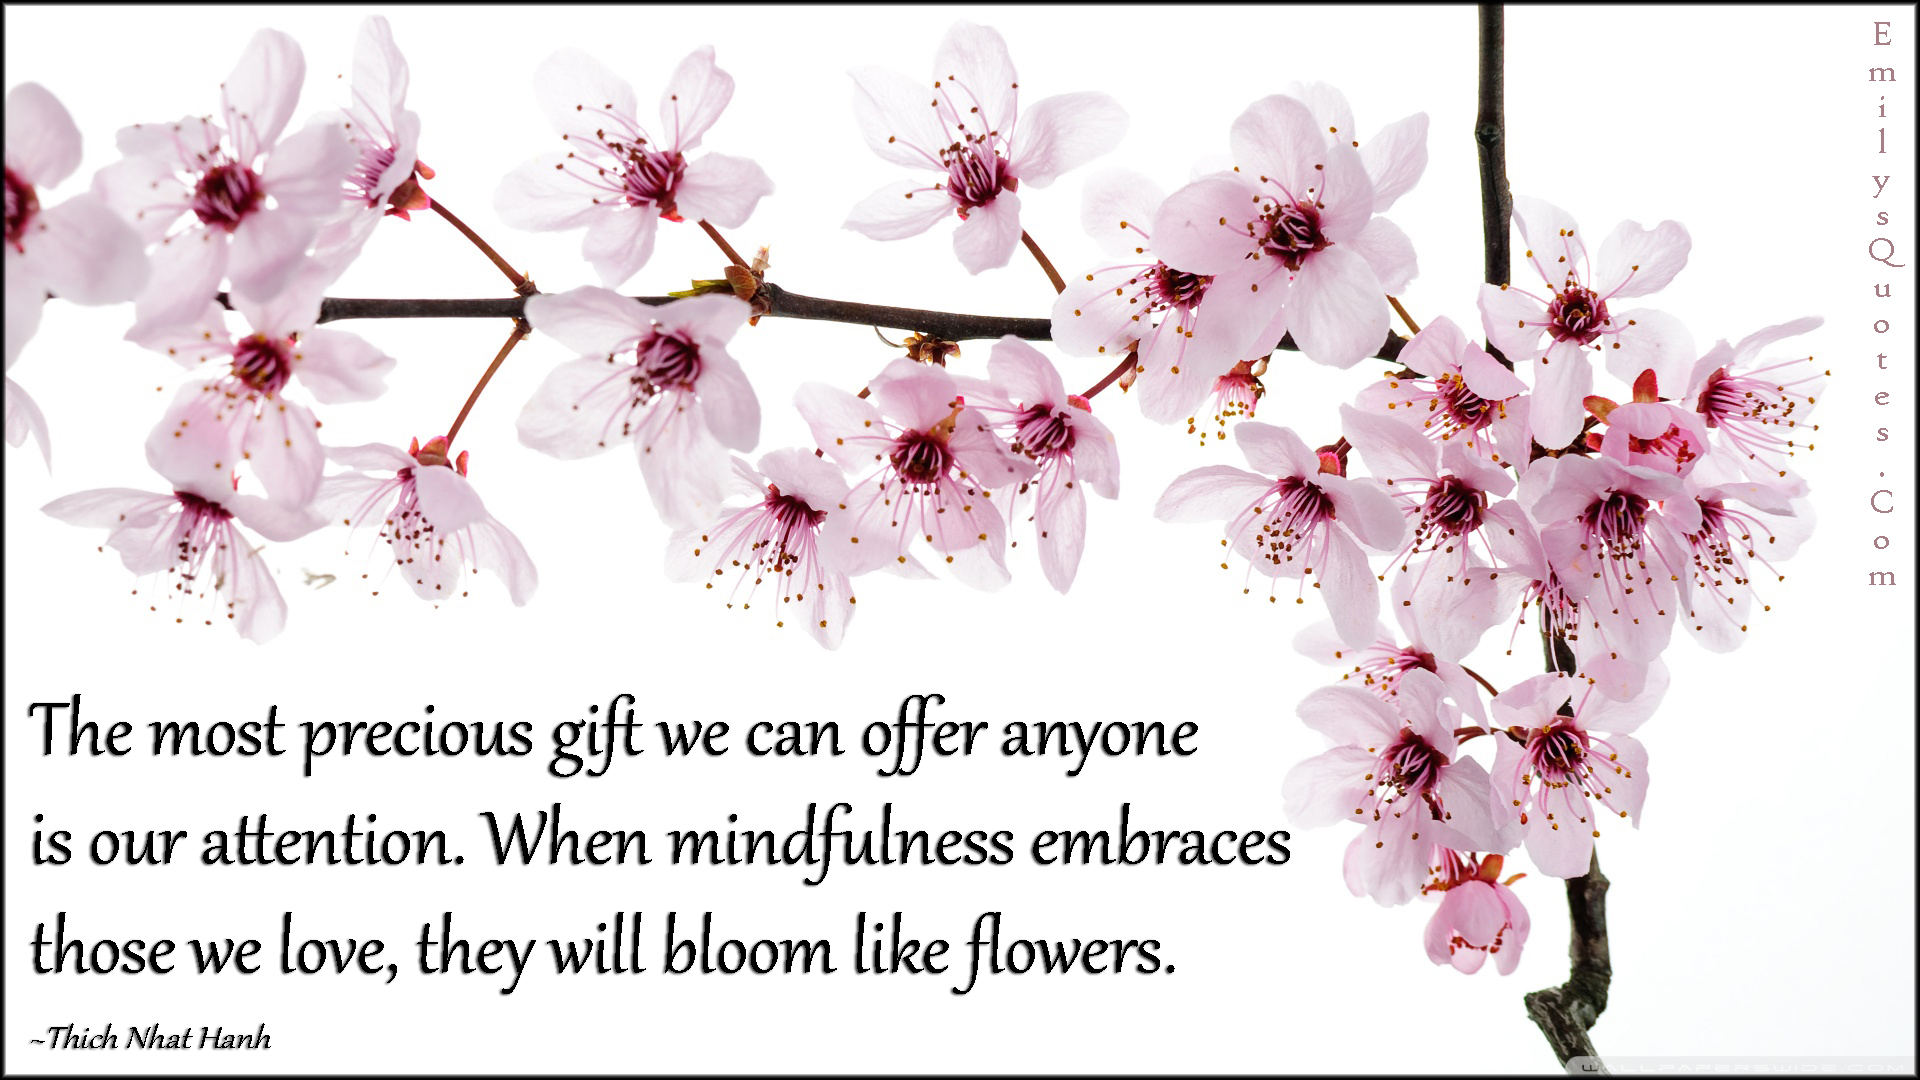 EmilysQuotes.Com - precious gift, offer, attention, caring, mindfulness, embrace, love, bloom, flower, relationship, amazing, great, inspirational, positive, wisdom, kindness, Thich Nhat Hanh